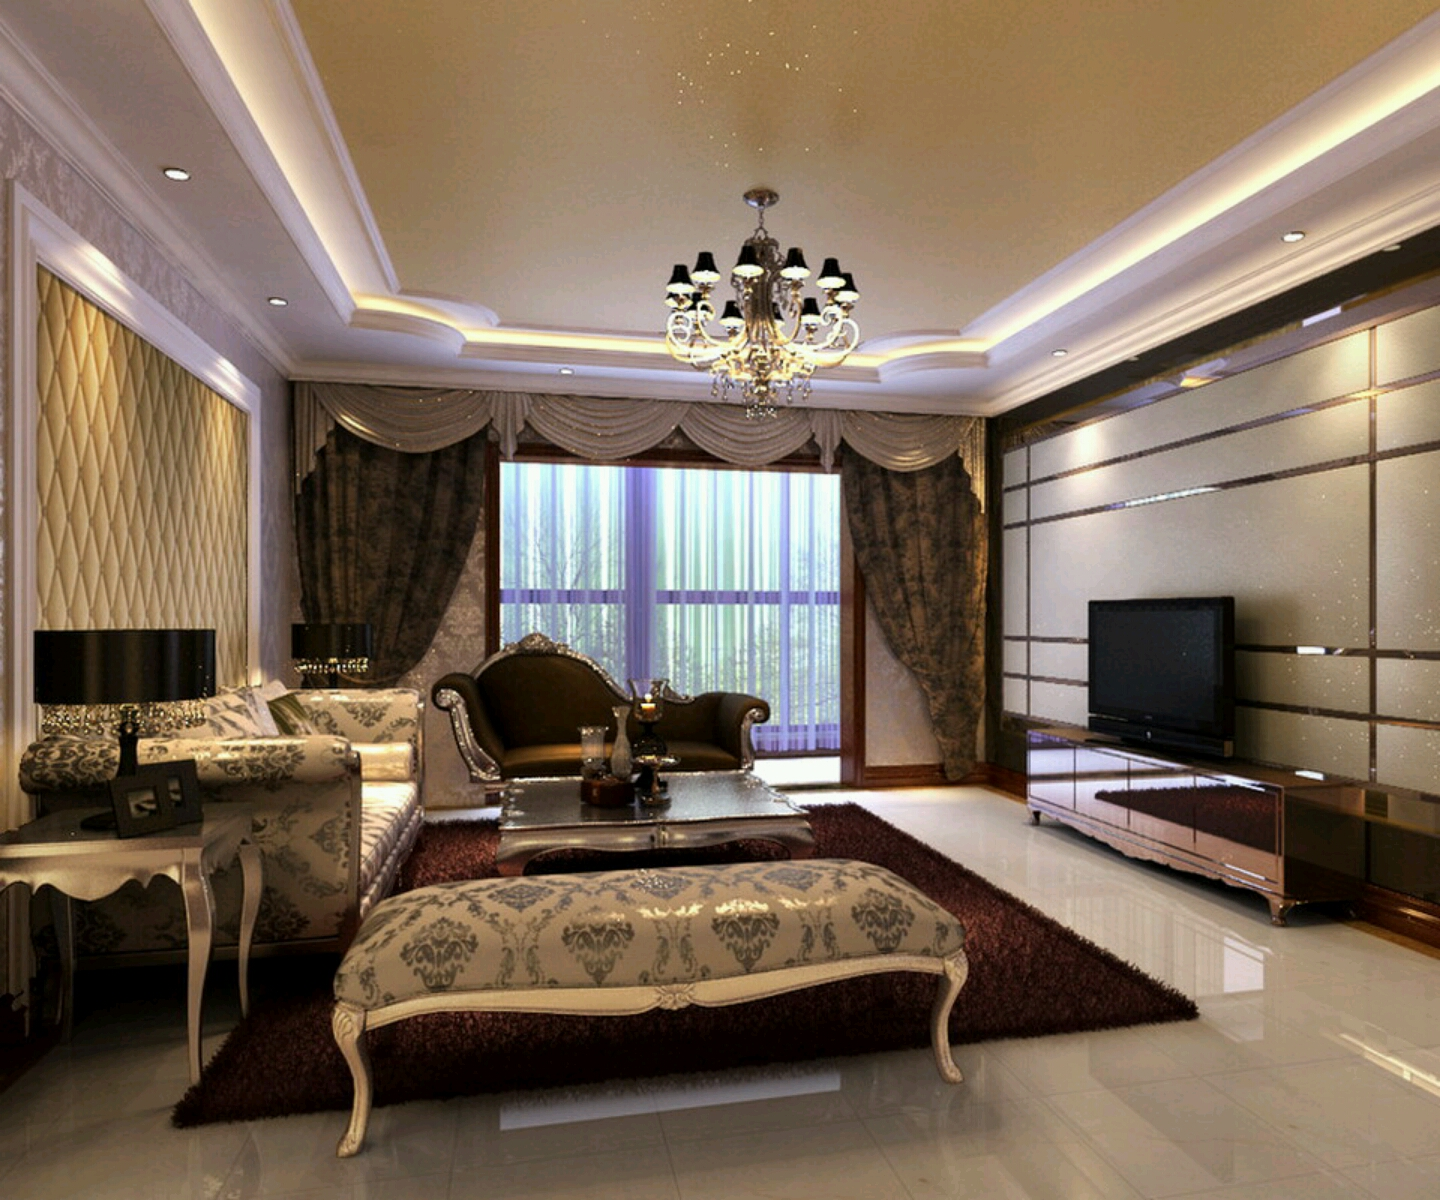 New home designs latest Luxury homes interior decoration  : Luxuryhomesinteriordecorationlivingroomdesignsideas1 from shoaibnzm-home-design.blogspot.com size 1440 x 1200 jpeg 1173kB